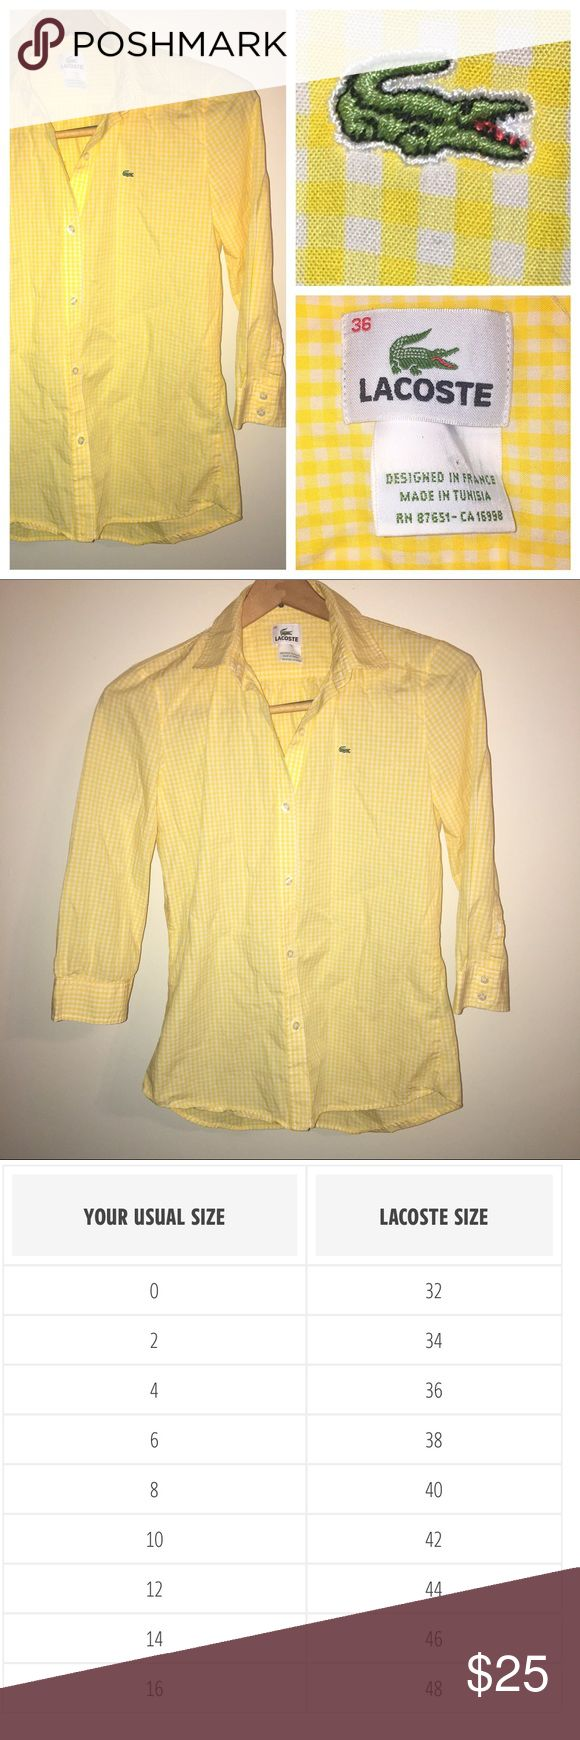 Lacoste Yellow Gingham 3/4 sleeve button up Cute Preppy Yellow Gingham button up. Goes Well With Shorts, Skirts, Or Pants. Fits Xs/S. In Great Condition. Lacoste Tops